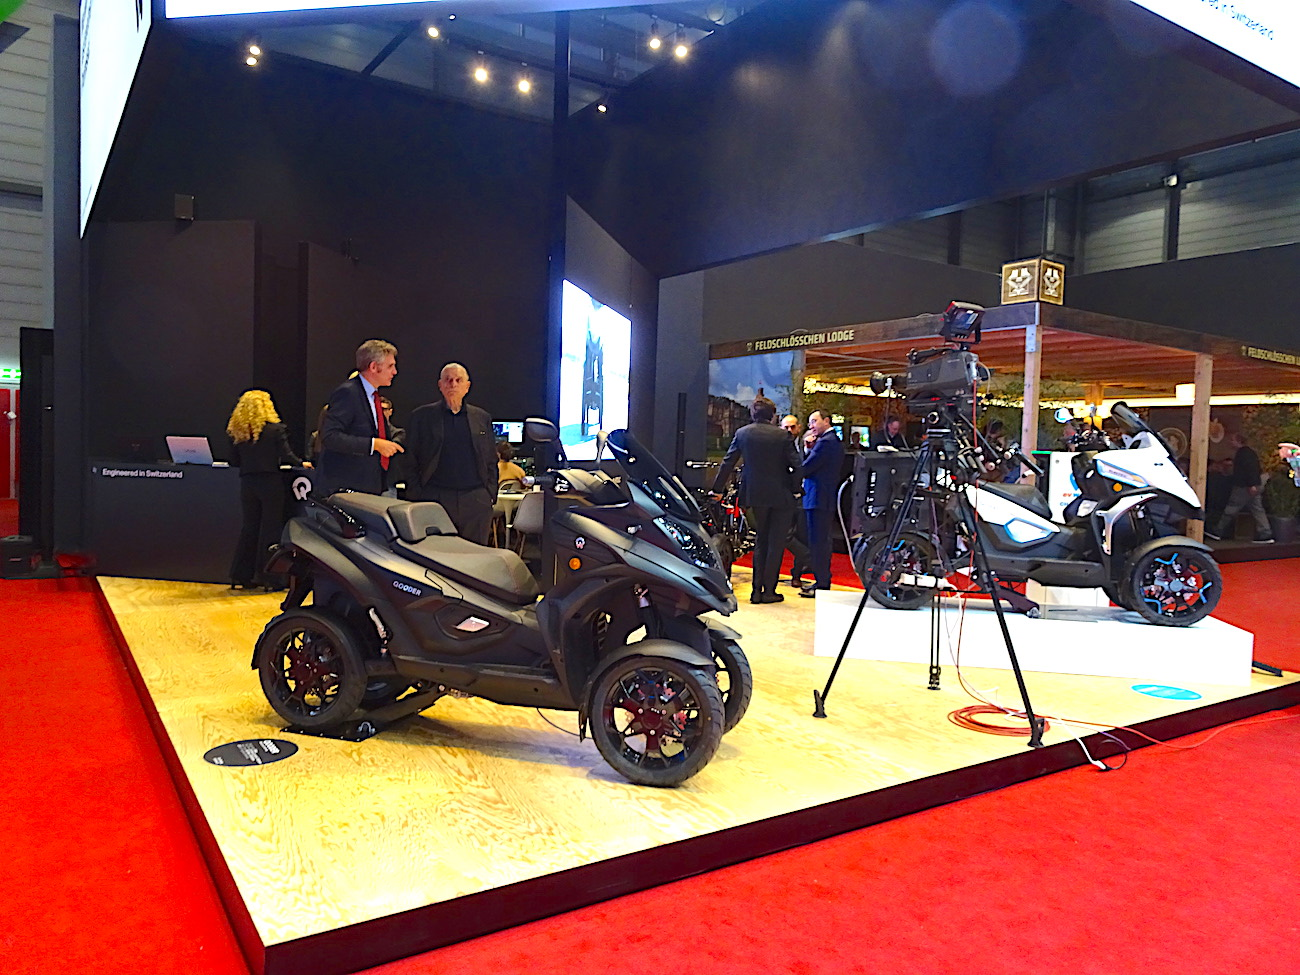 Salon international de l'Auto, départ pour Quadro